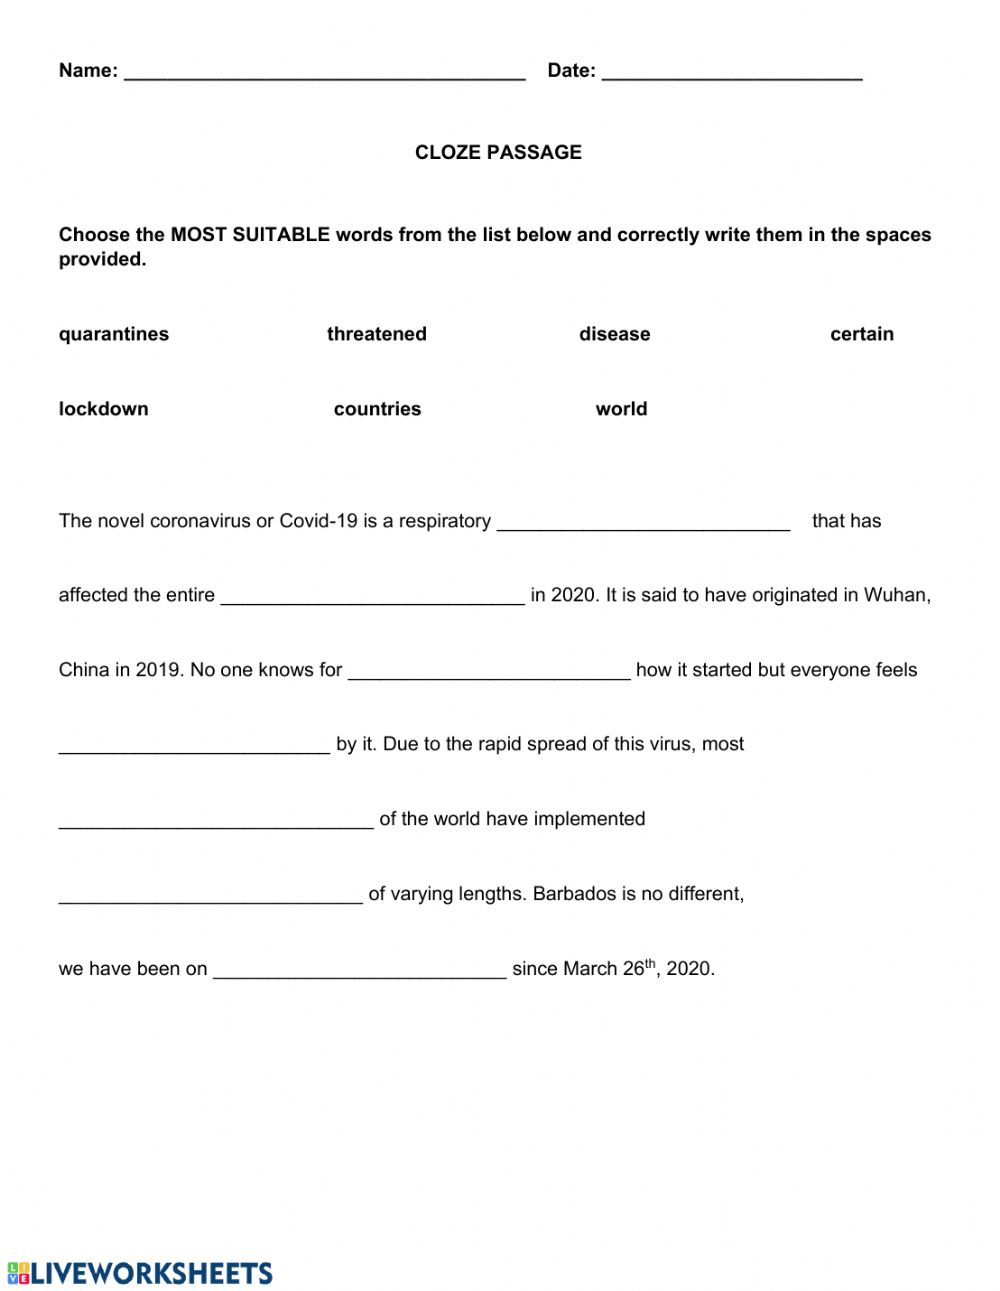 medium resolution of Covid-19 Cloze worksheet